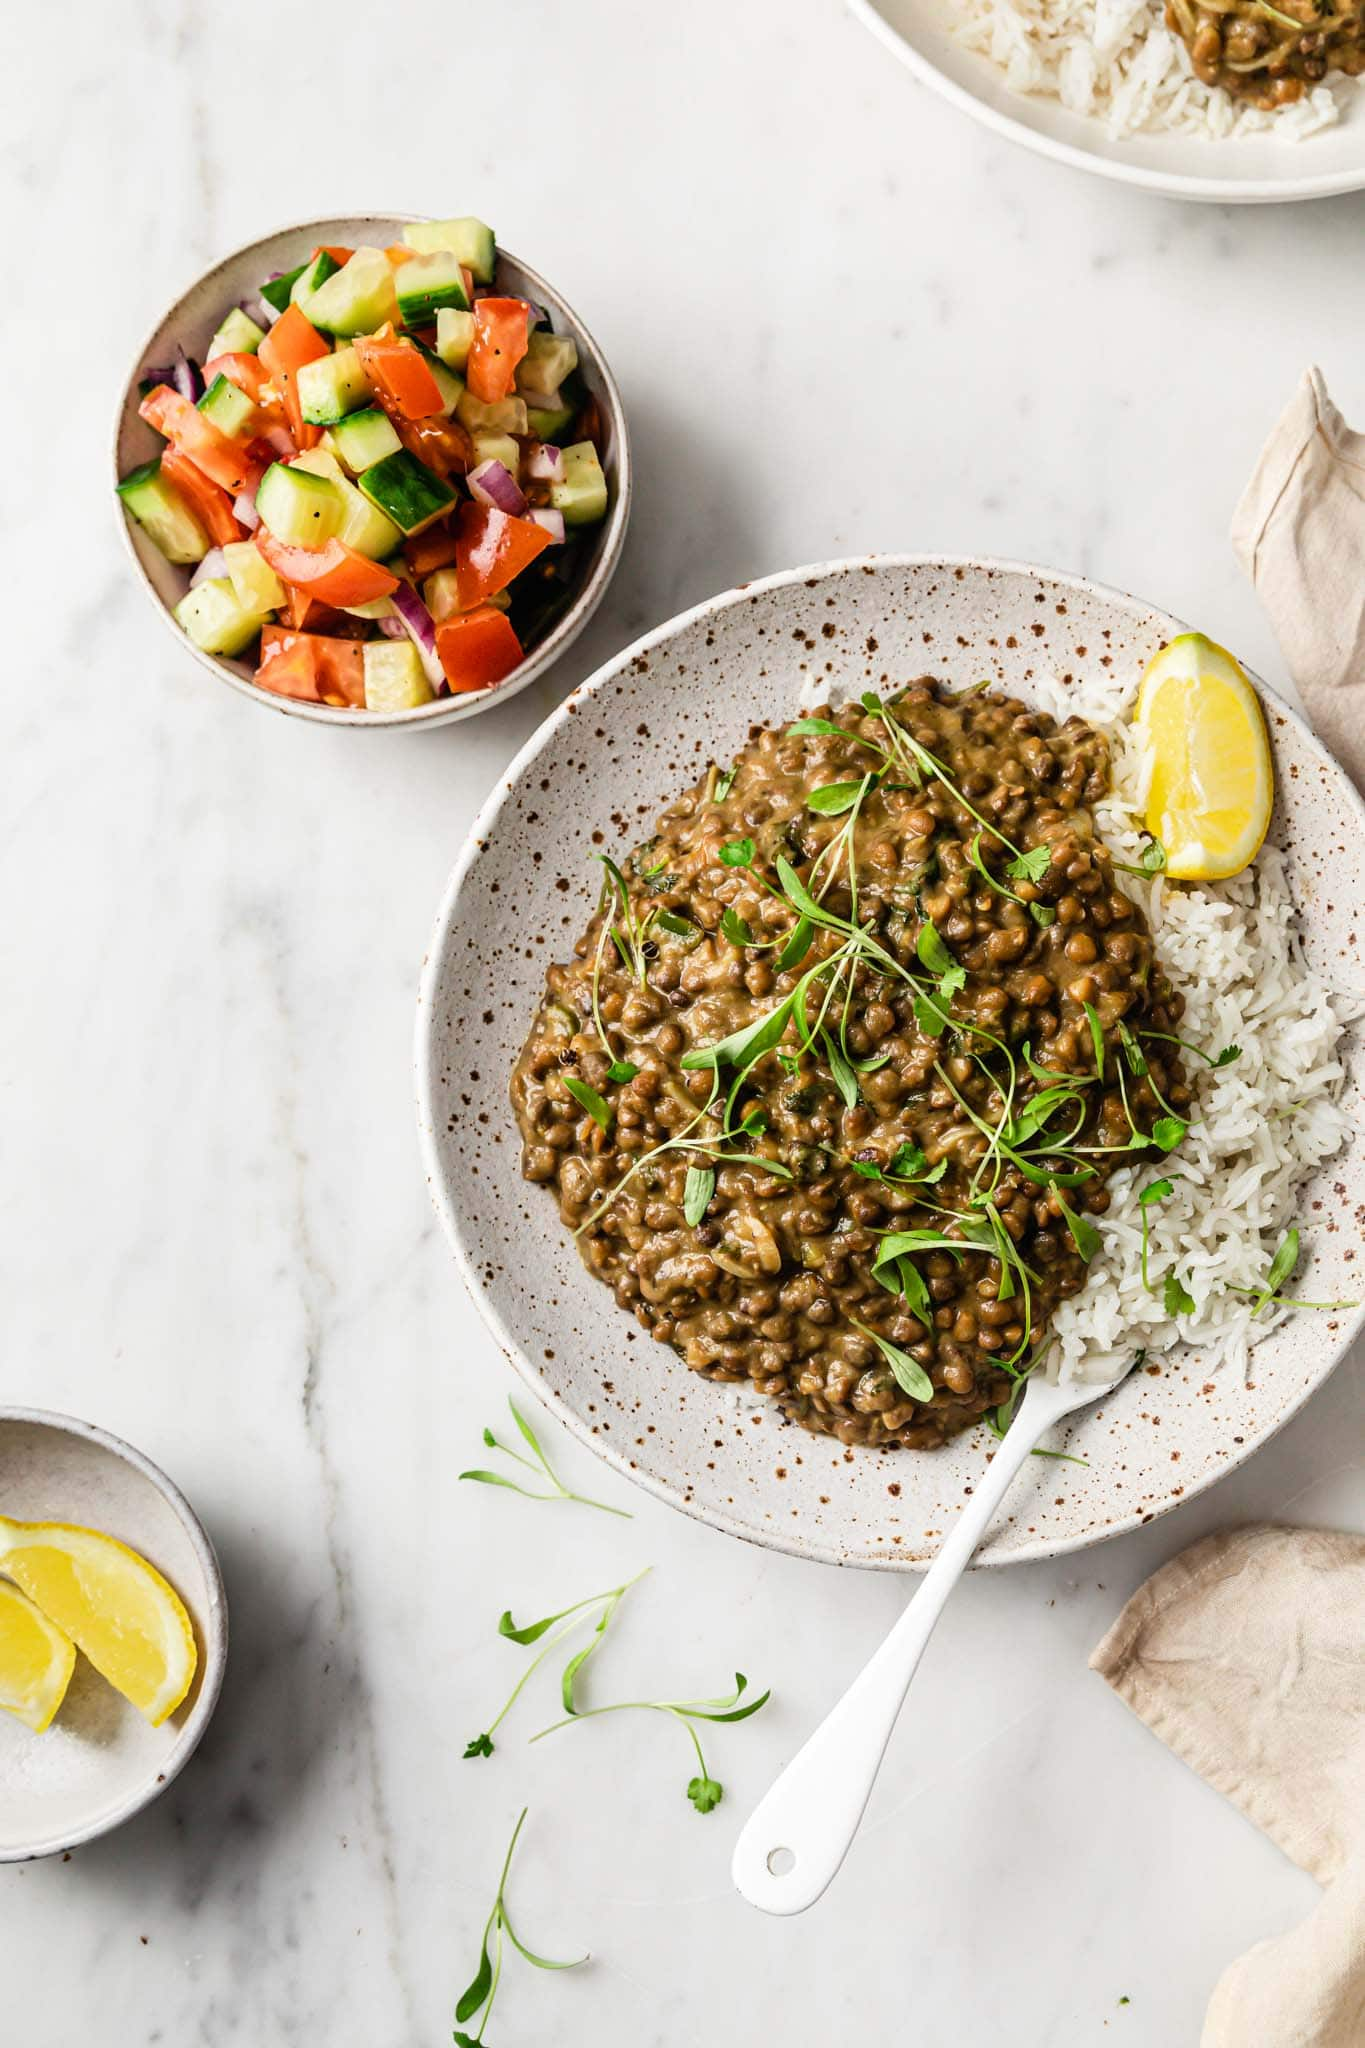 Brown Lentil Curry (Whole Masoor Dal) served with a chopped salad of crunchy vegetables on the side